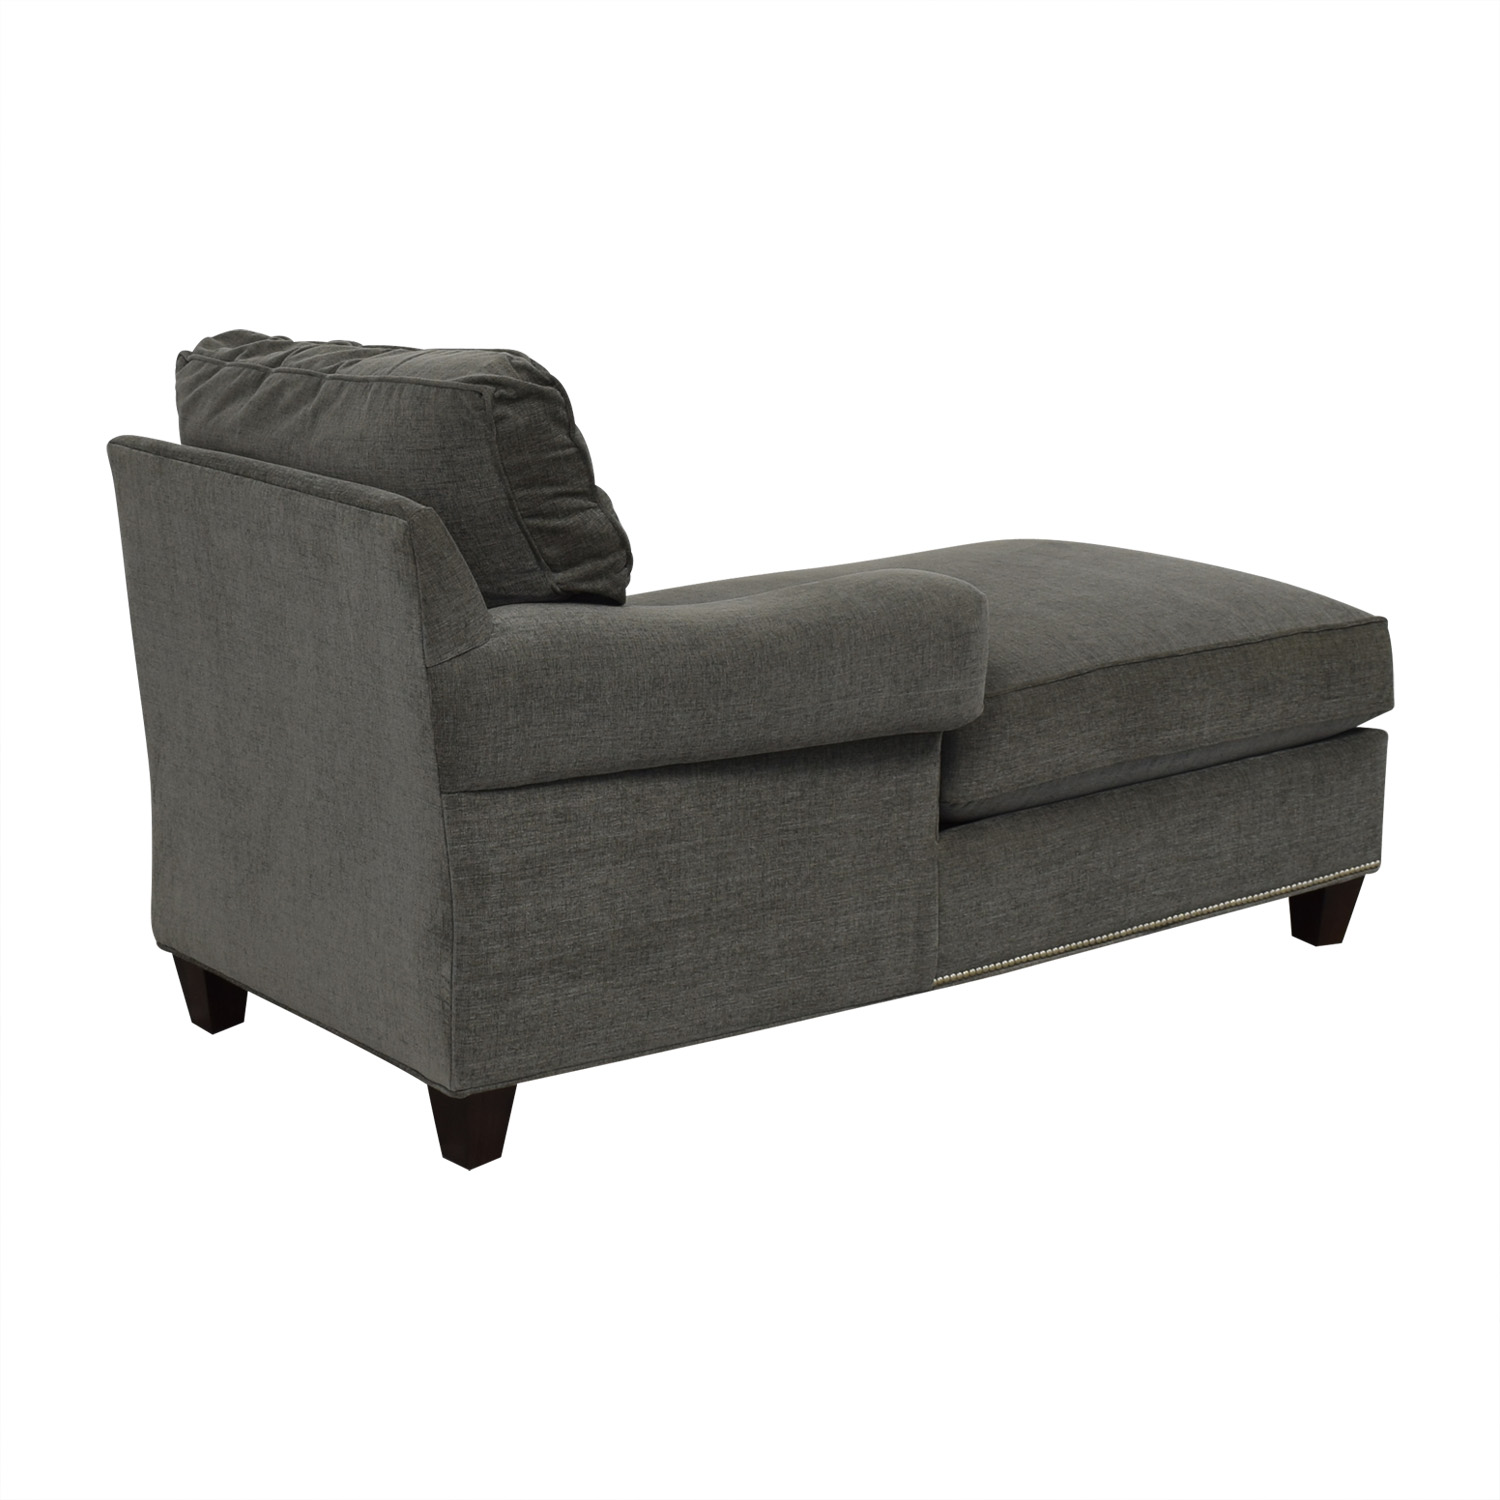 Chaise Bassett Furniture 79Off Furniture Sofas 79Off Bassett Chaise rCQxWdoEBe